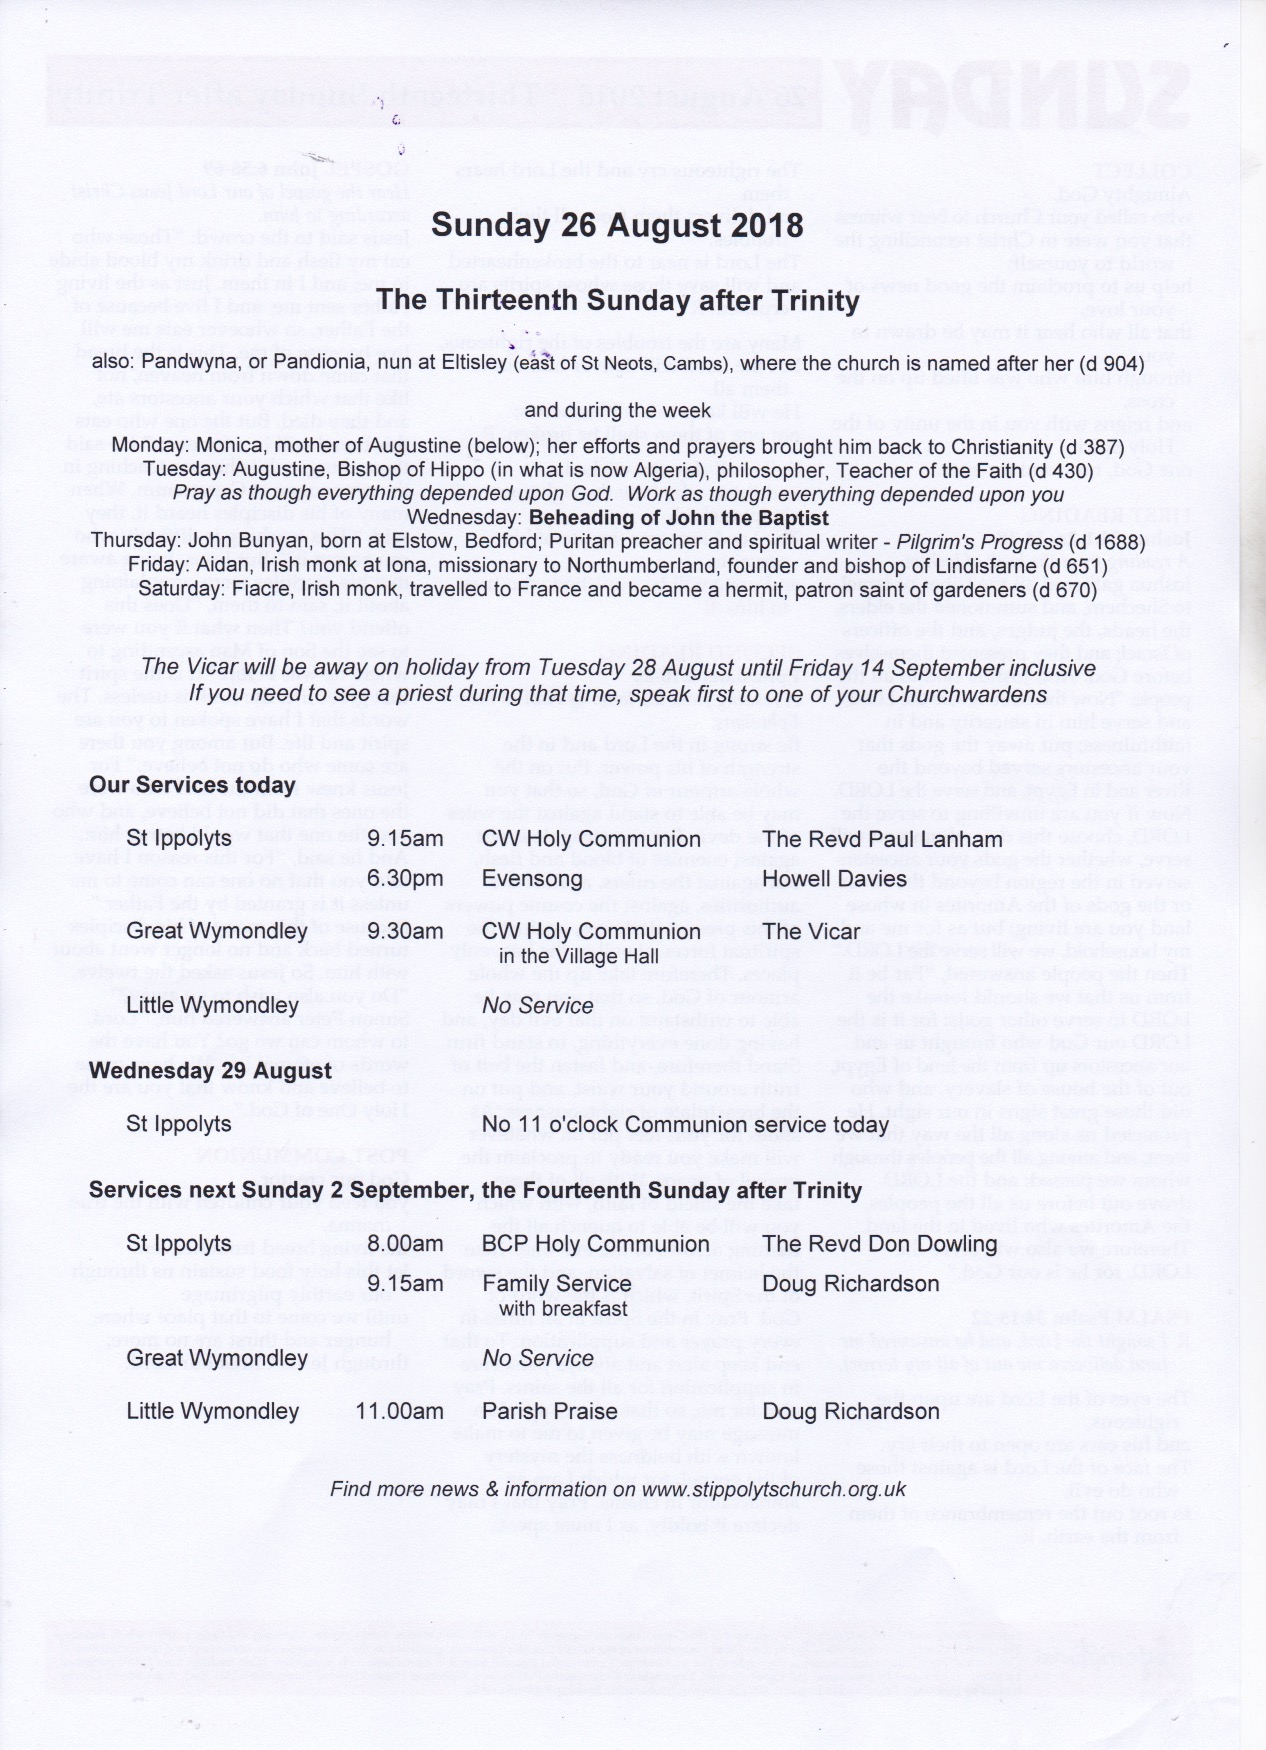 Weekly Pew Sheet, the Thirteenth Sunday after Trinity, 26th August 2016.